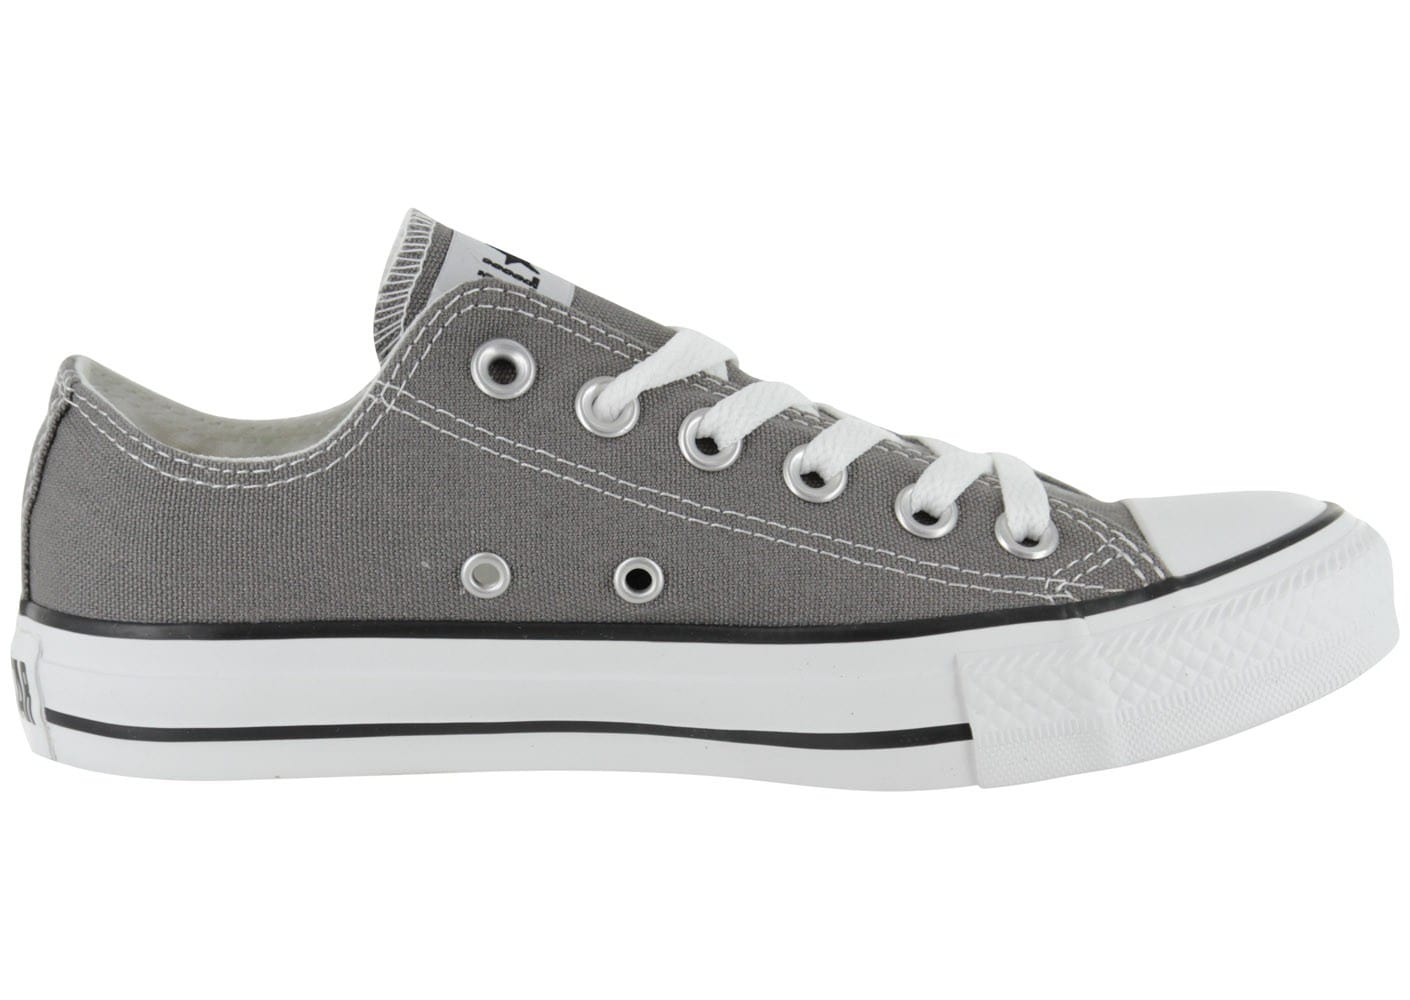 Converse Chuck Taylor All Star Basse Grise Chaussures